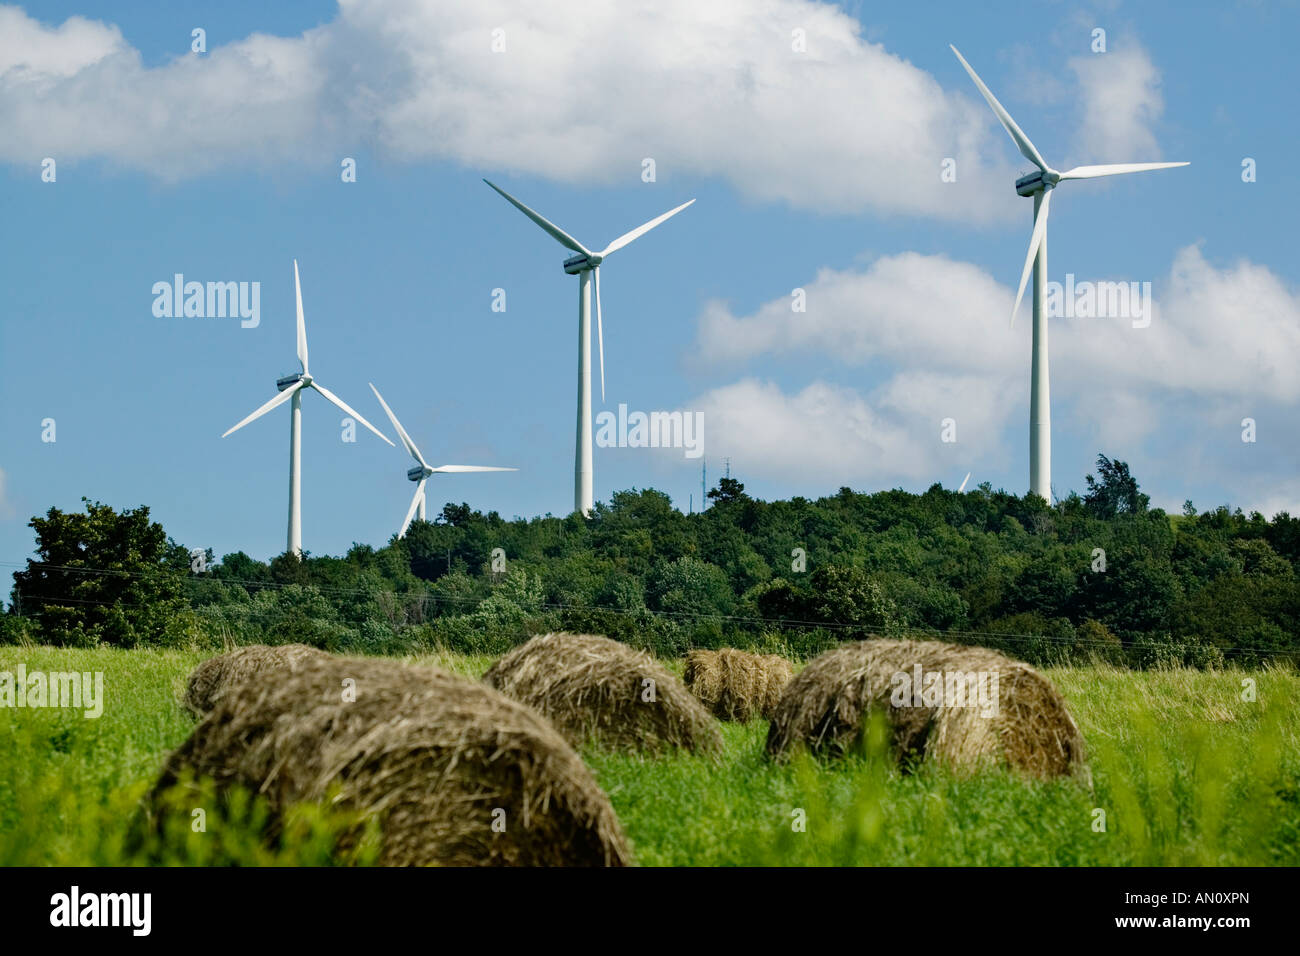 Wind turbine generator Madison upstate New York Route 20 Great Western Turnpike - Stock Image